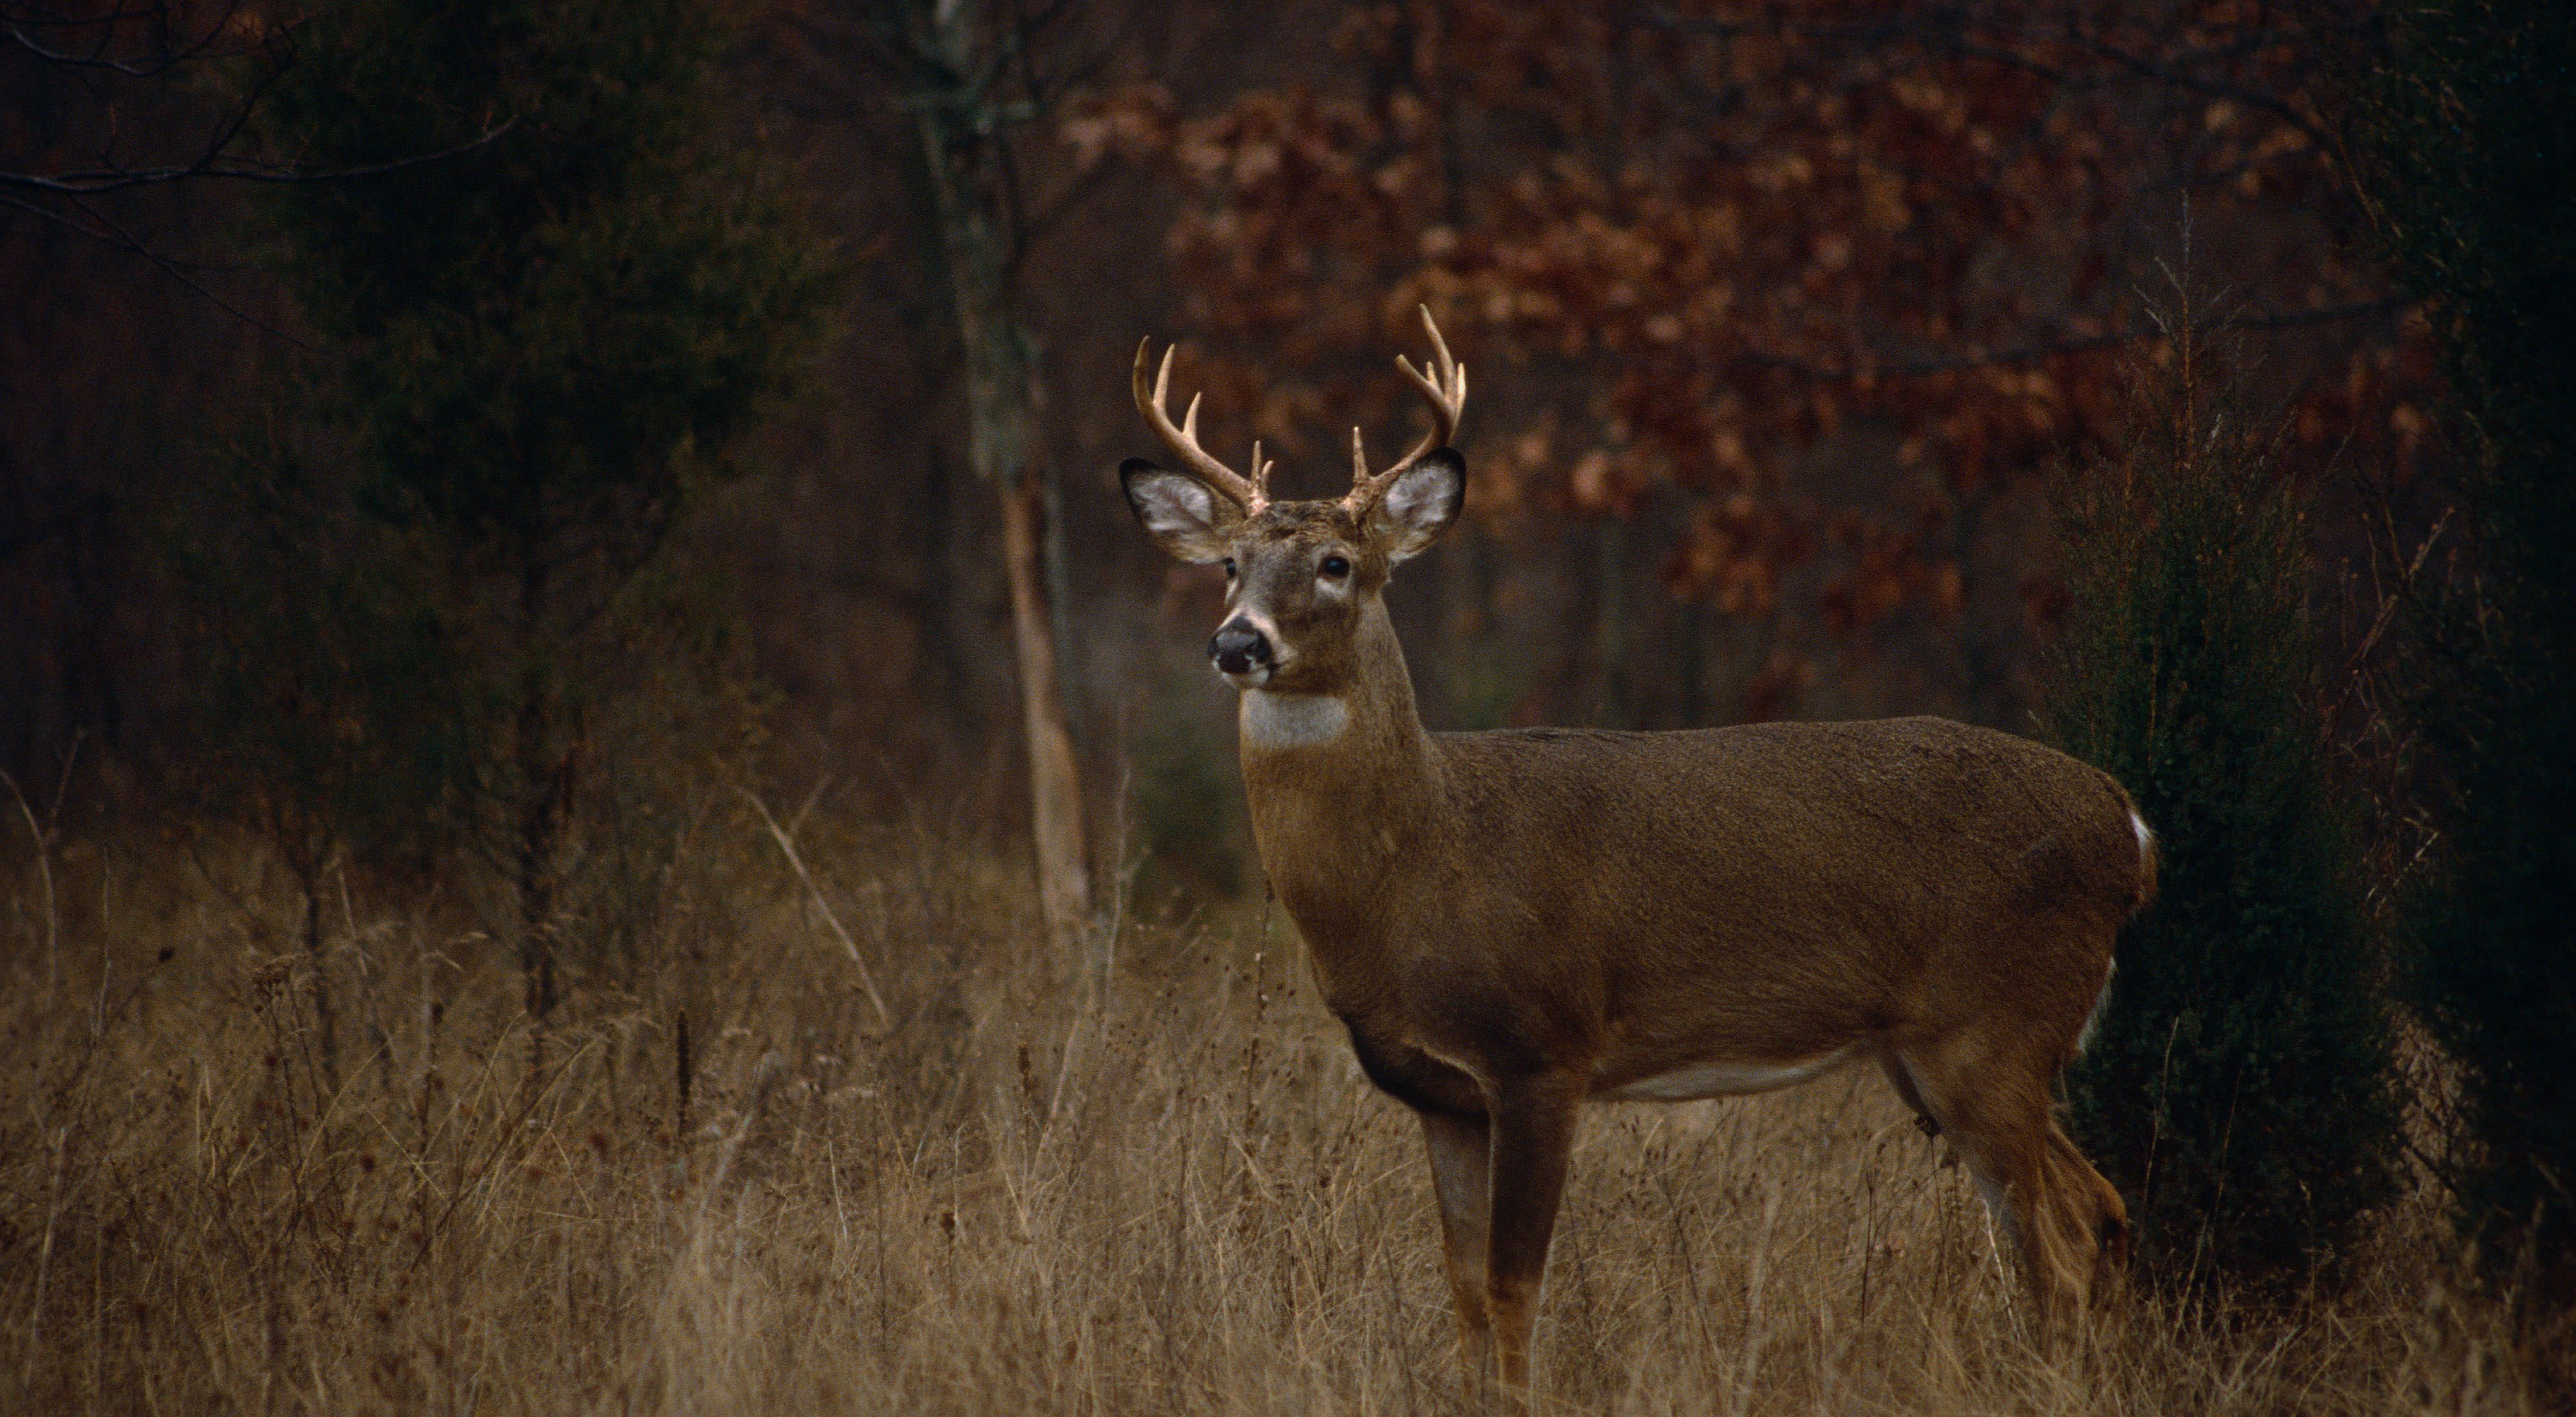 A male whitetail deer stands in a field.